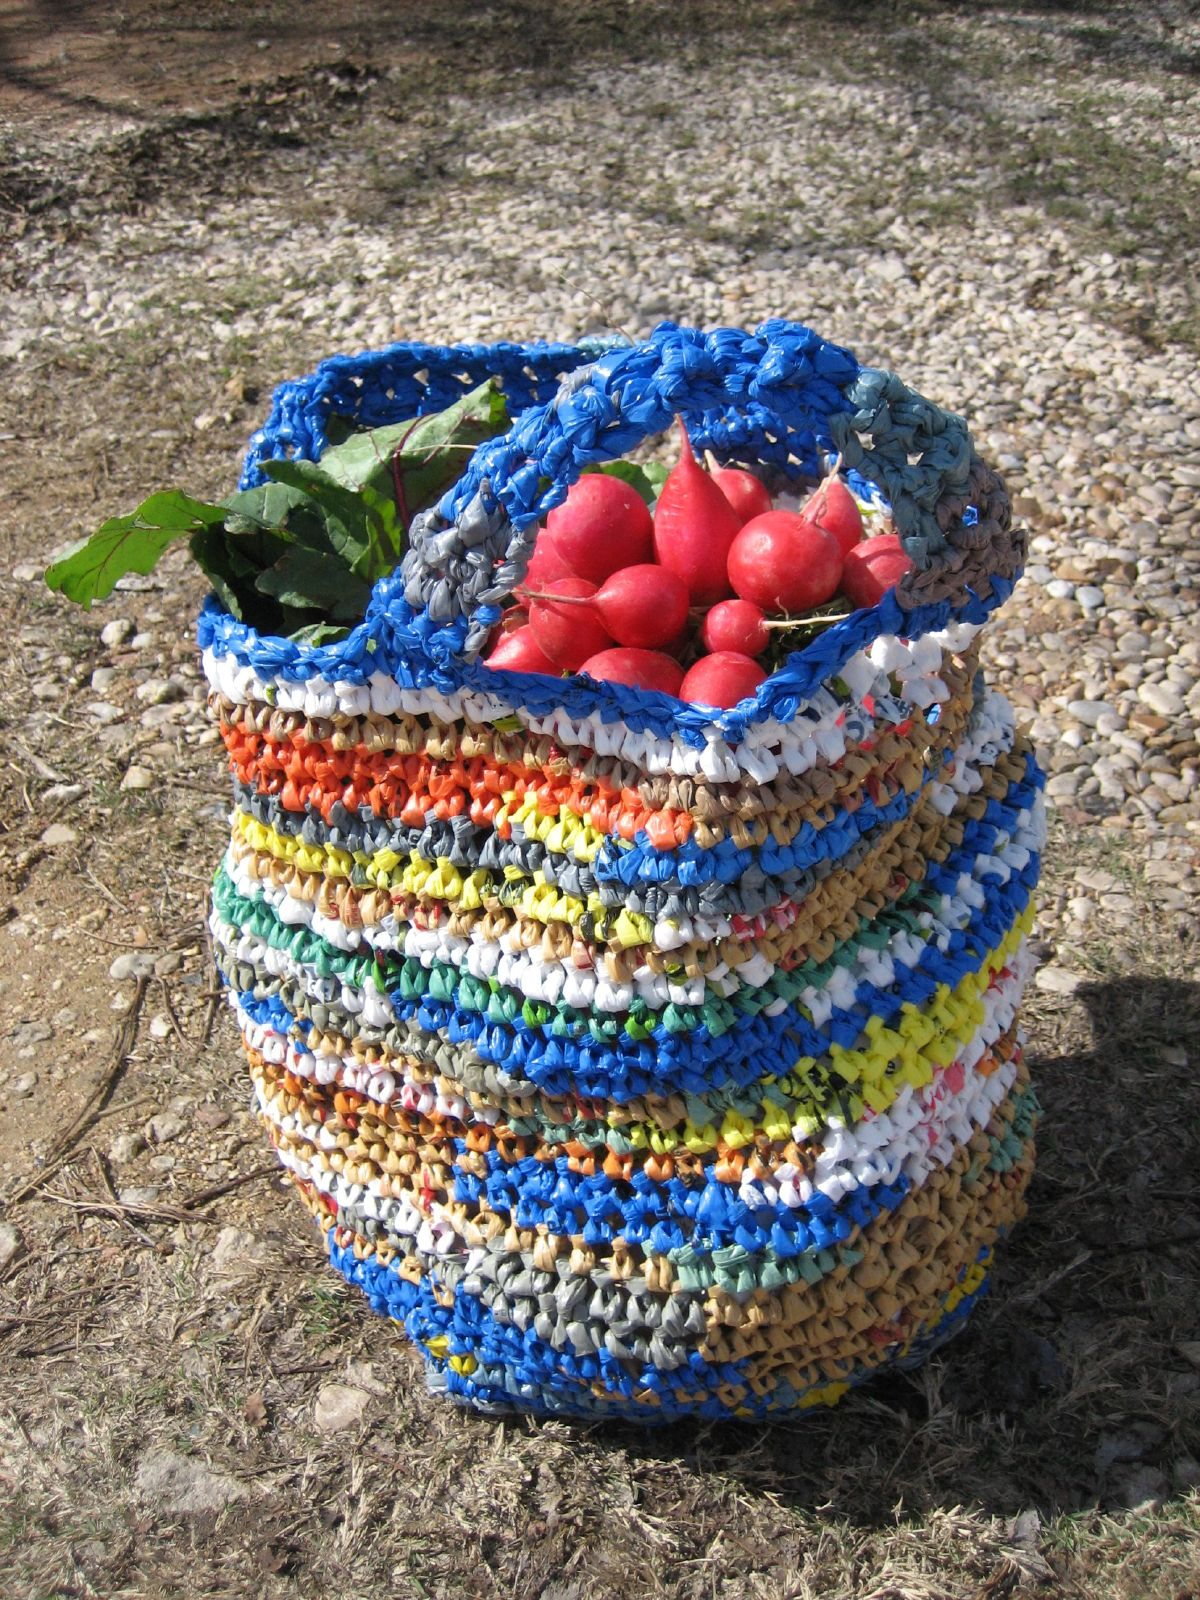 Crochet Pattern For Bags Plastic : Plastic Bag Crochet Grocery Bag (2) BagsBeGone.com